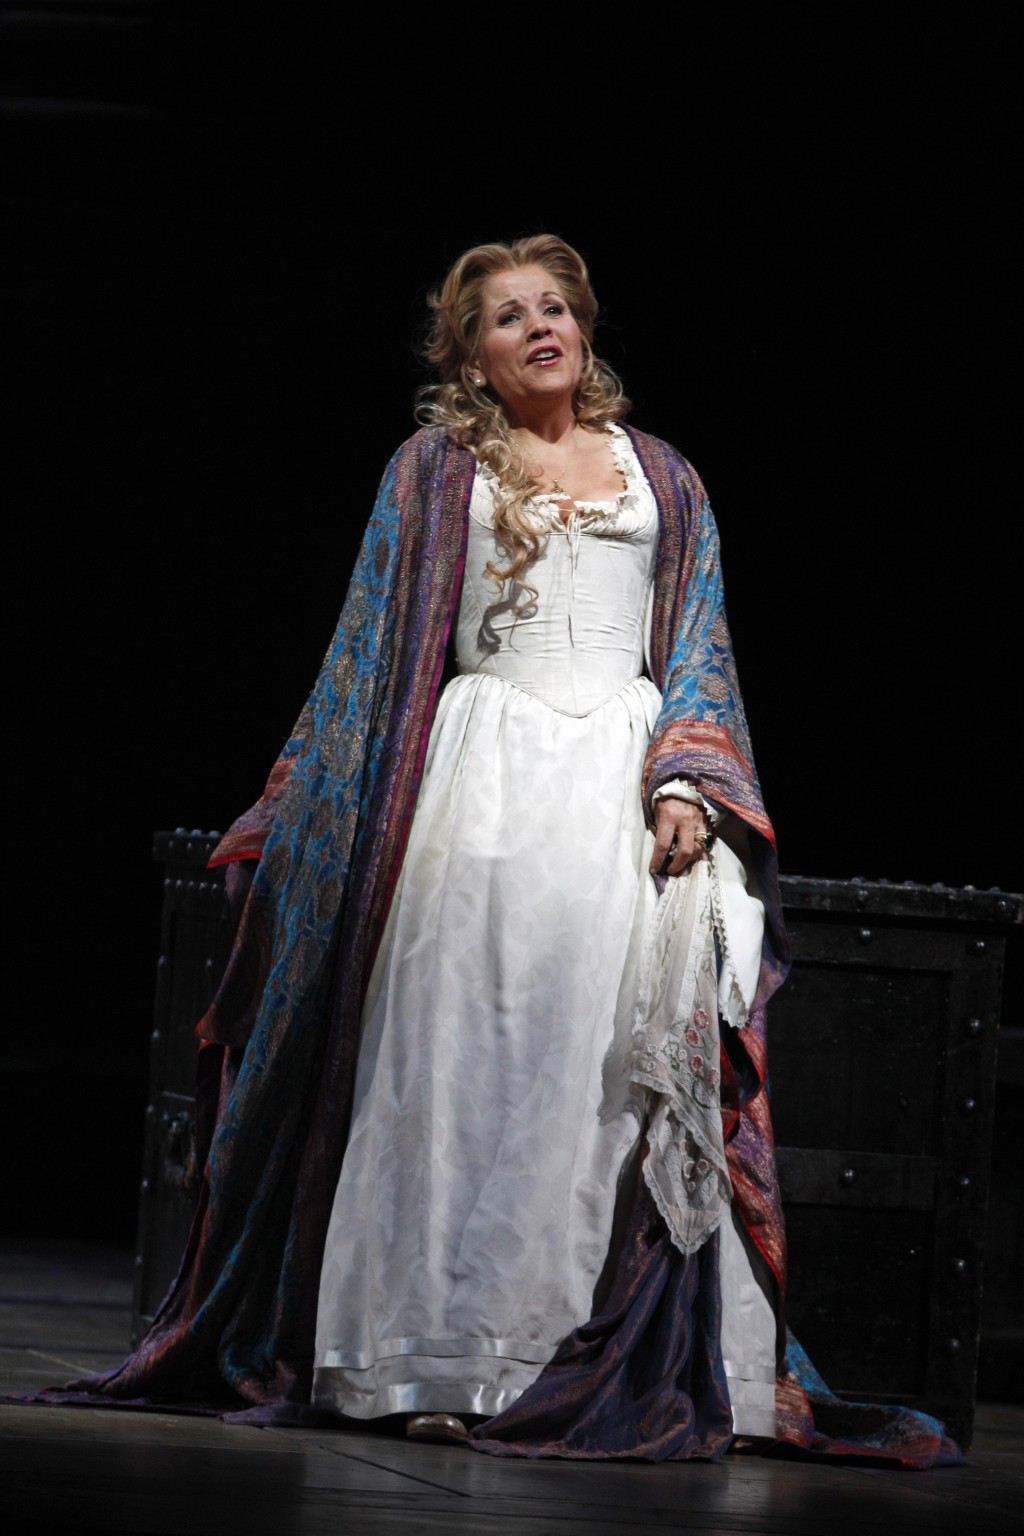 """FILE - In this Friday, Oct. 5 2012 file photo, soprano Renee Fleming performs as Desdemona during the final dress rehearsal of Guiseppe Verdi's """"Otell..."""